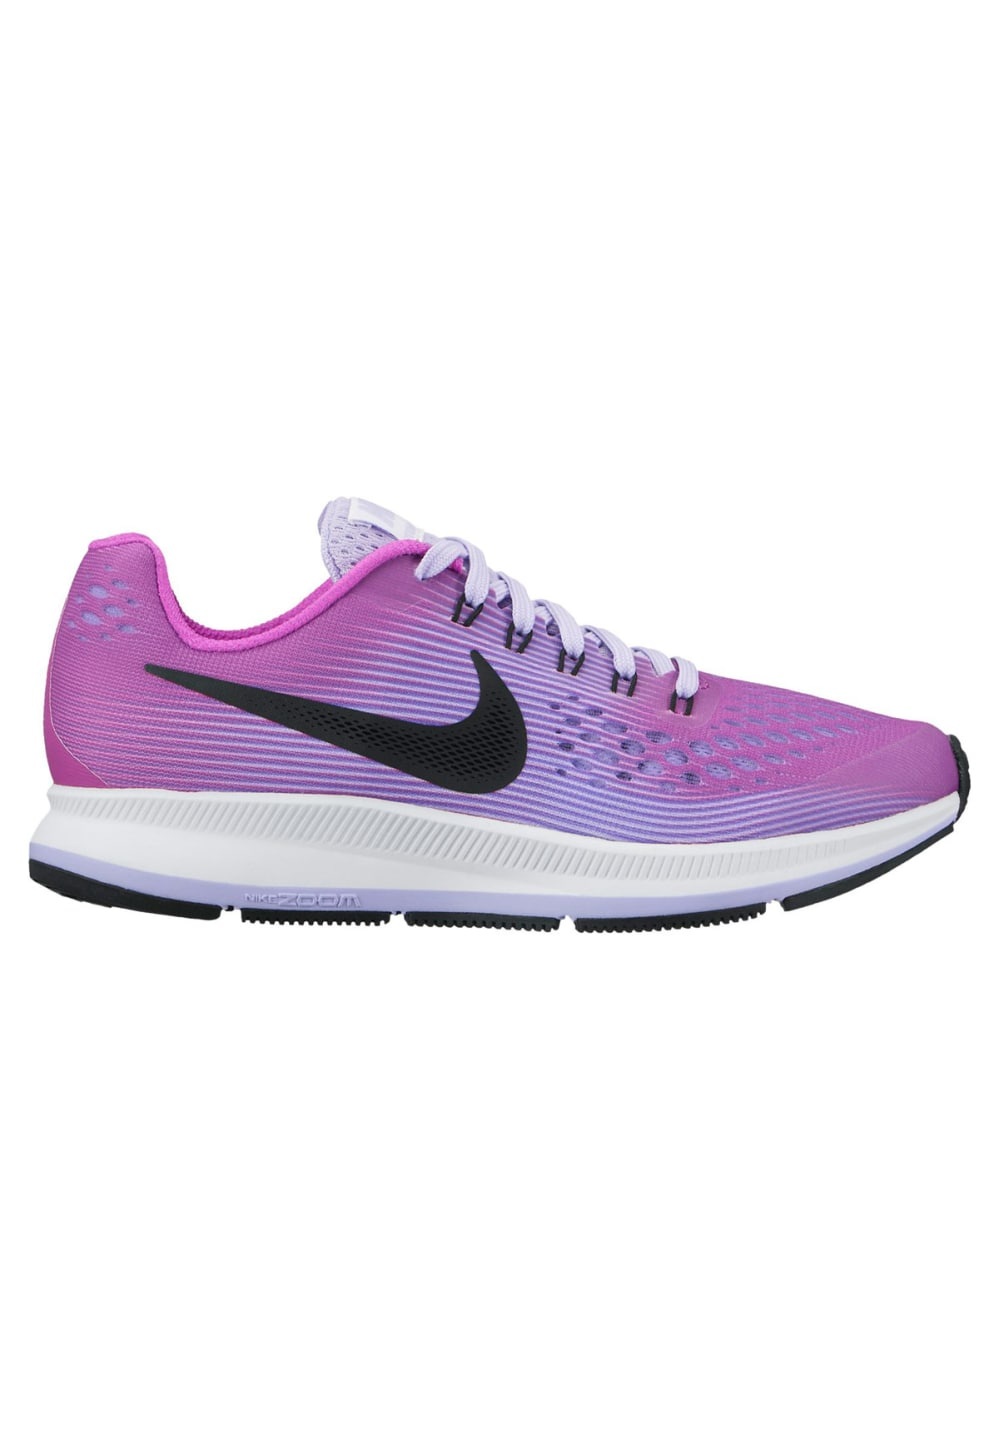 outlet store 6b20d 70517 Nike Zoom Pegasus 34 GS Girls - Running shoes - Purple